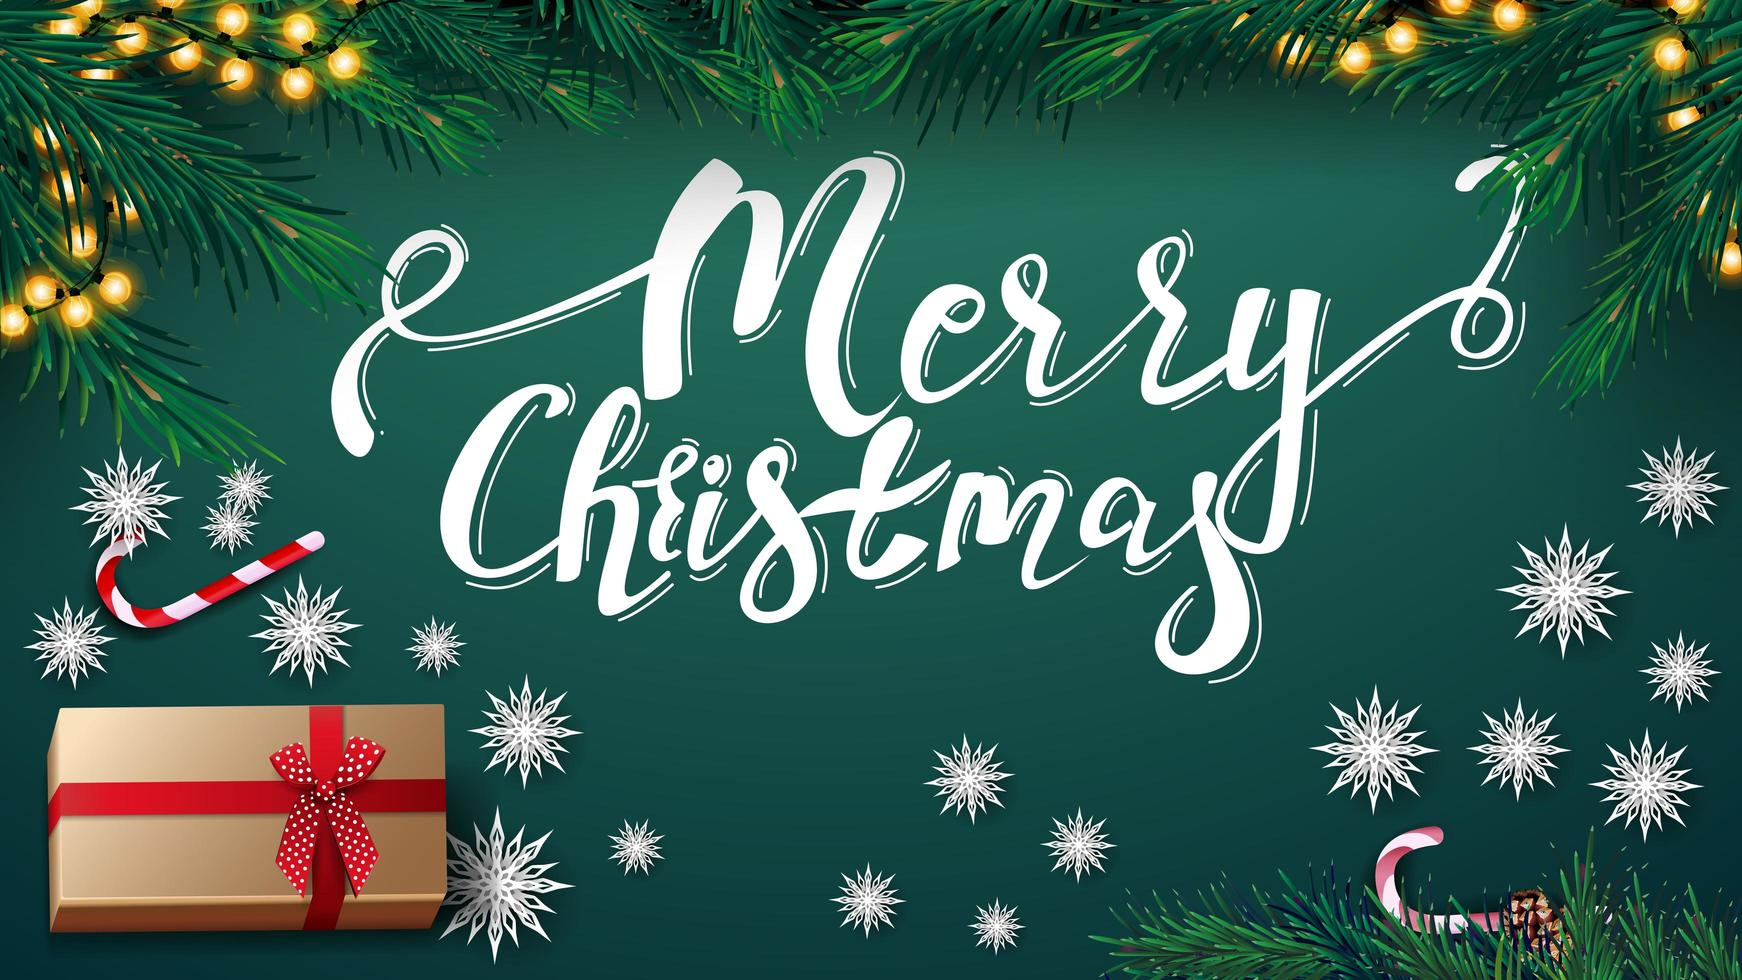 Merry Christmas, green postcard with garland, Christmas tree, present, paper snowflakes and candy can, top view vector